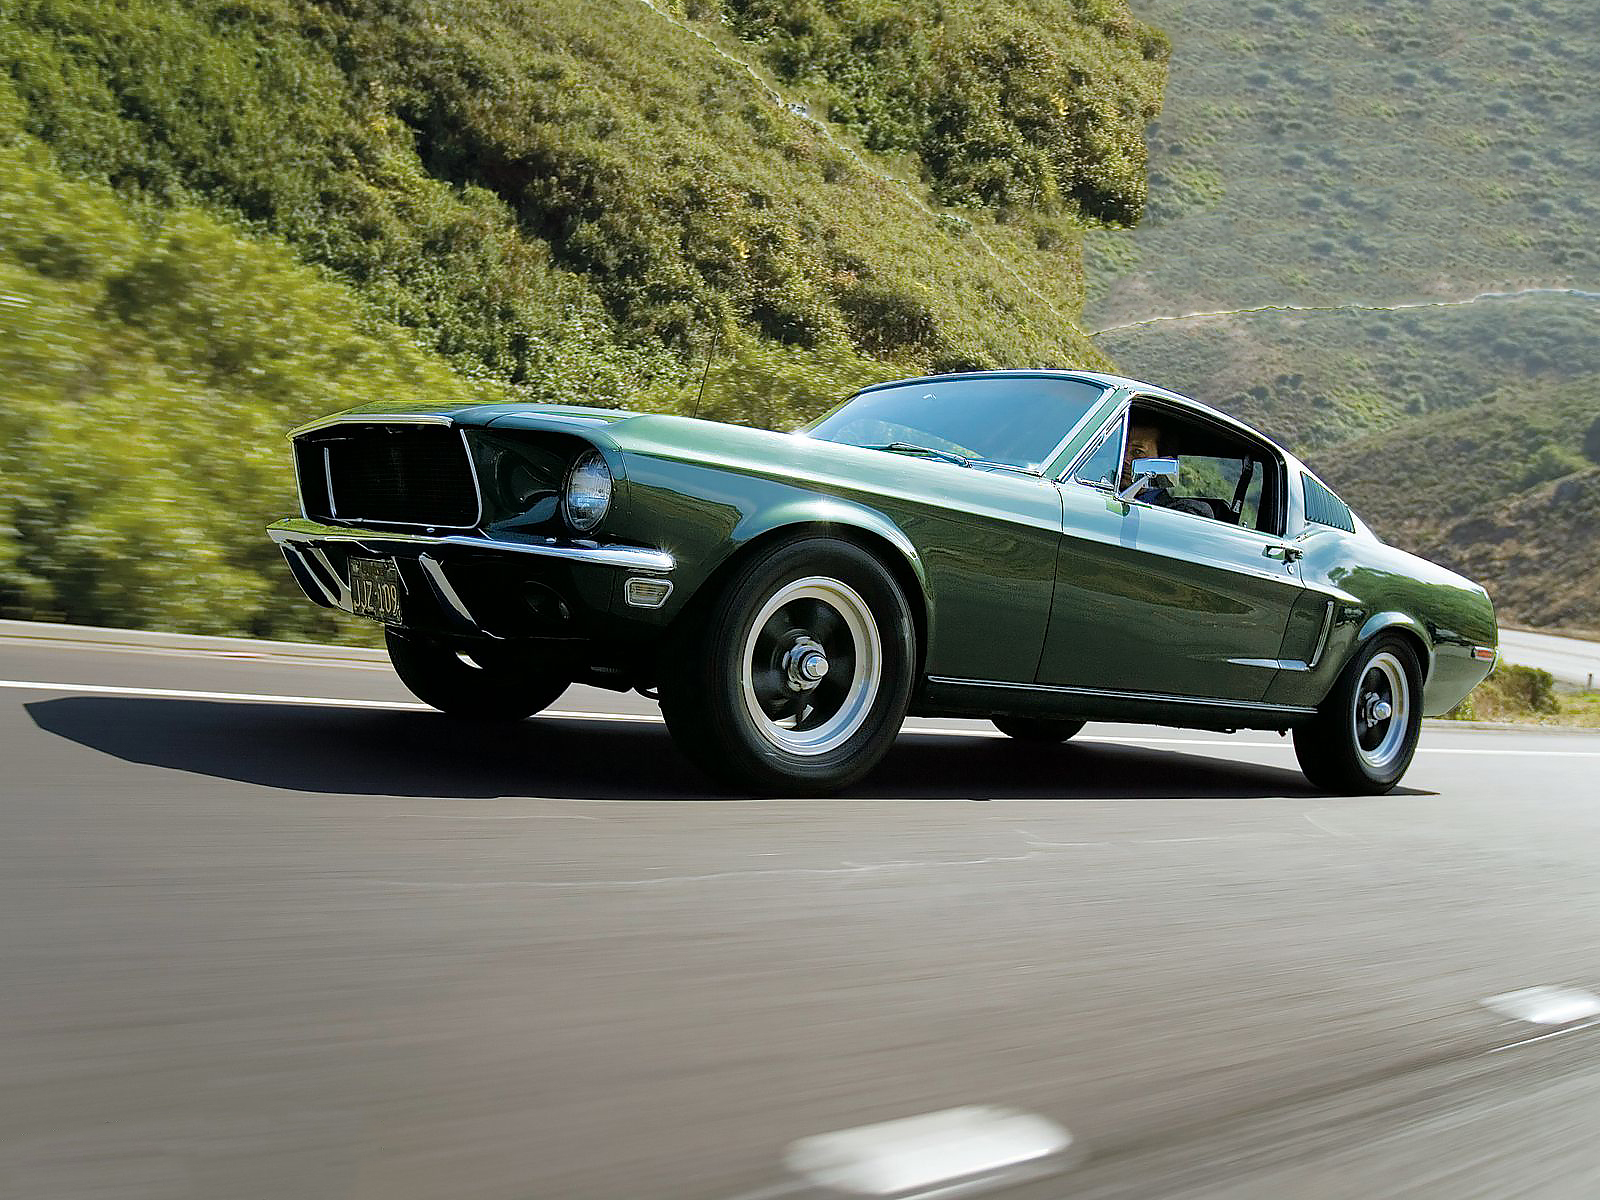 bullitt and steve mcqueen s ford mustang 390 gt vs dodge charger bullitt and steve mcqueen s ford mustang 390 gt bullitt and steve mcqueen s ford mustang 390 gt